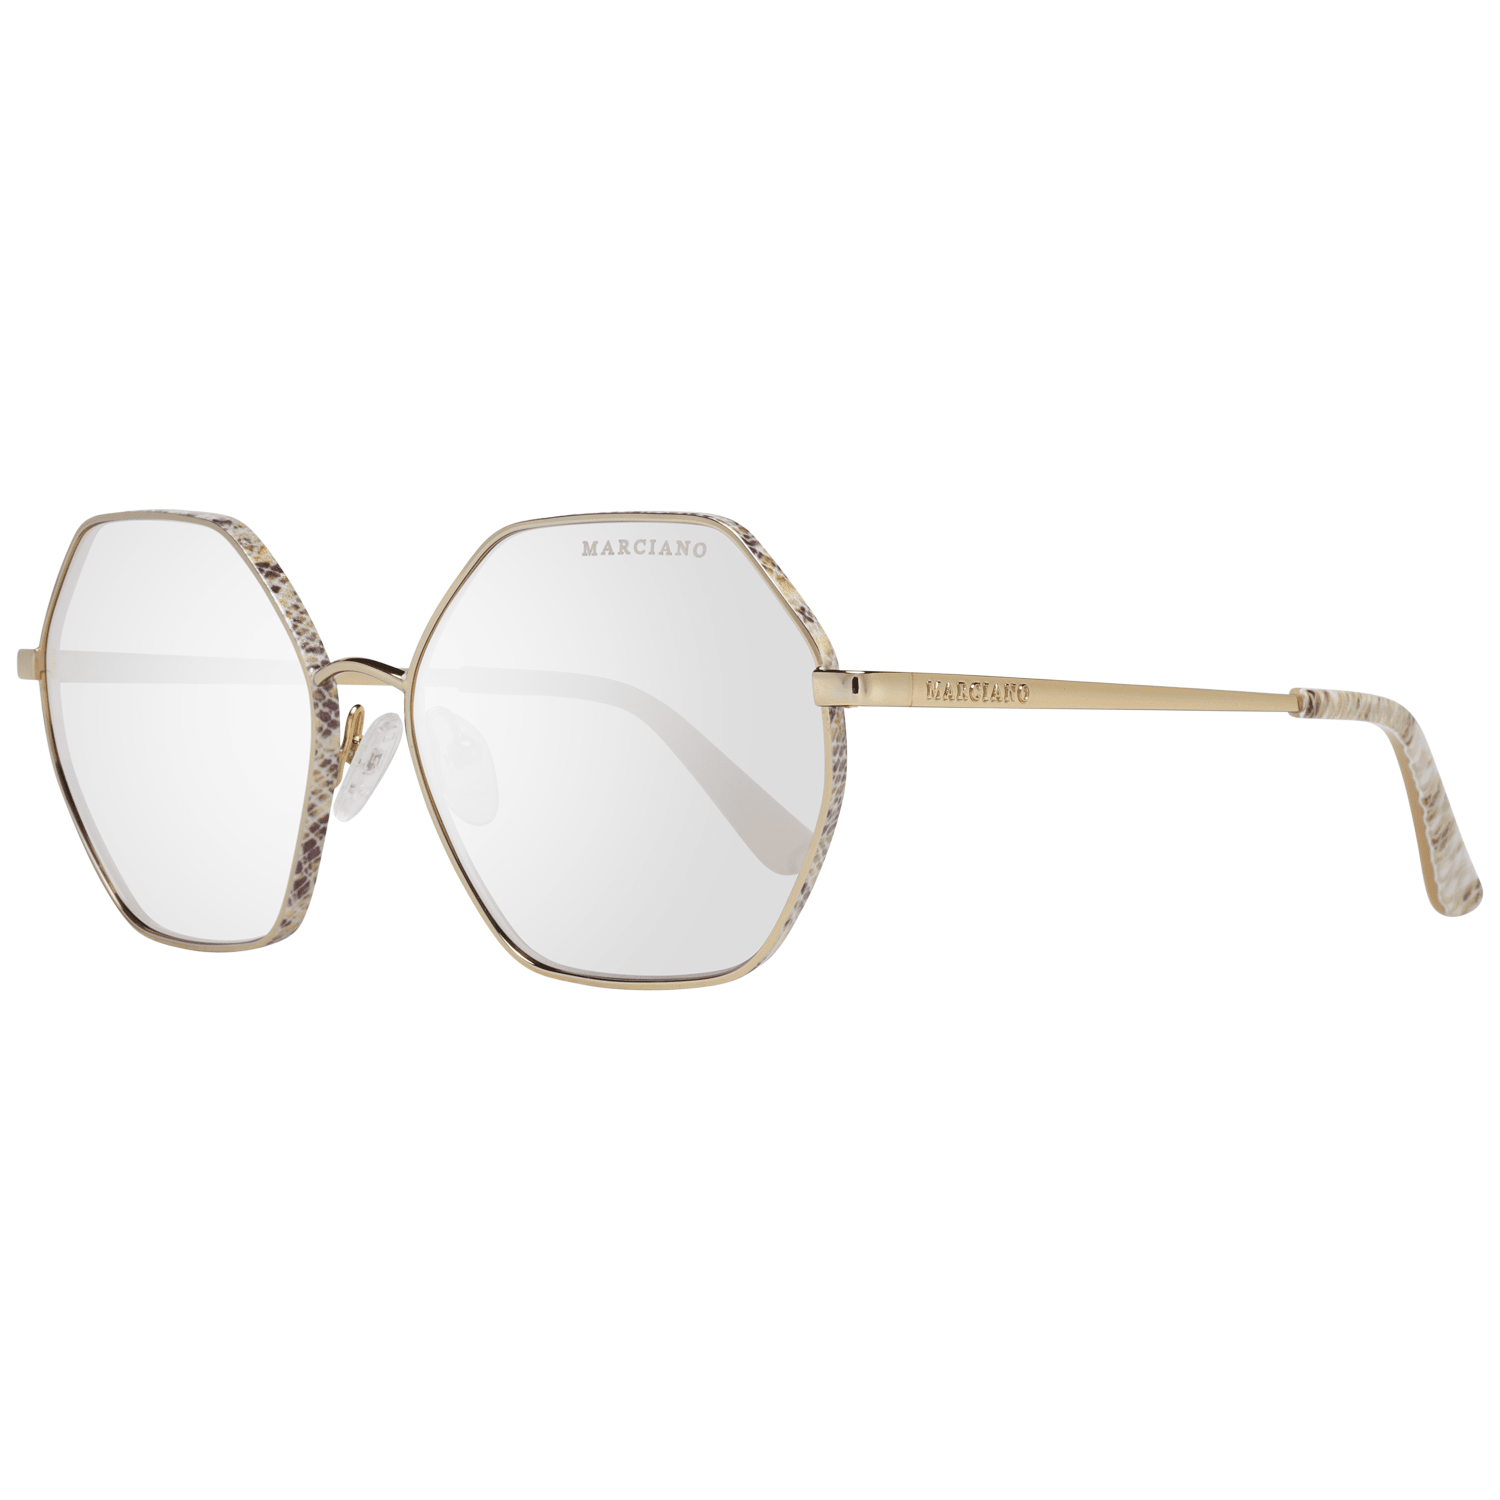 Guess By Marciano Women's Sunglasses Gold GM0800